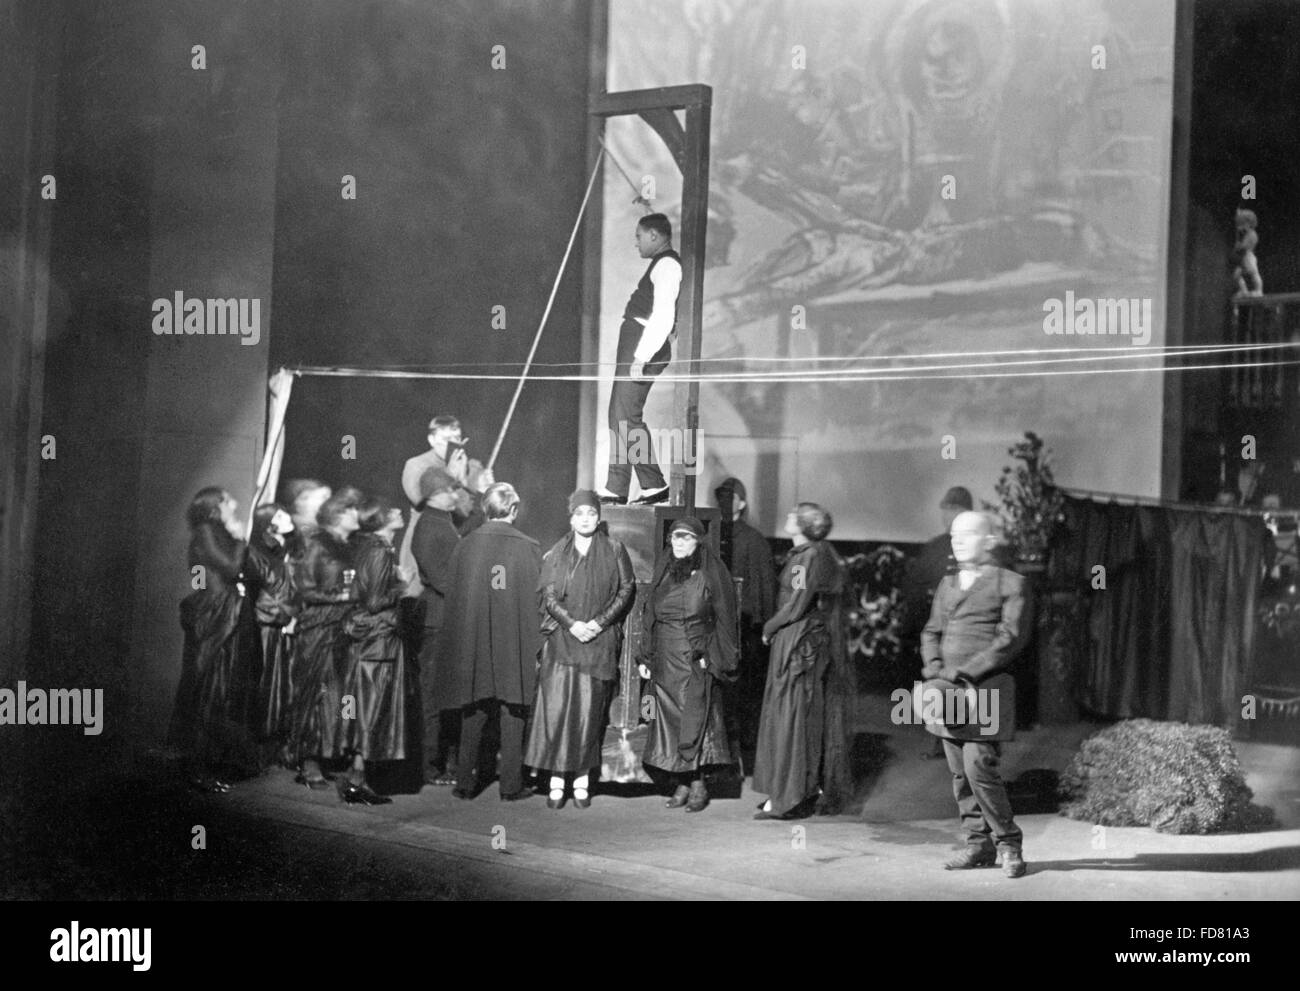 Premiere of The Threepenny Opera in Berlin, Germany, 1928 - Stock Image